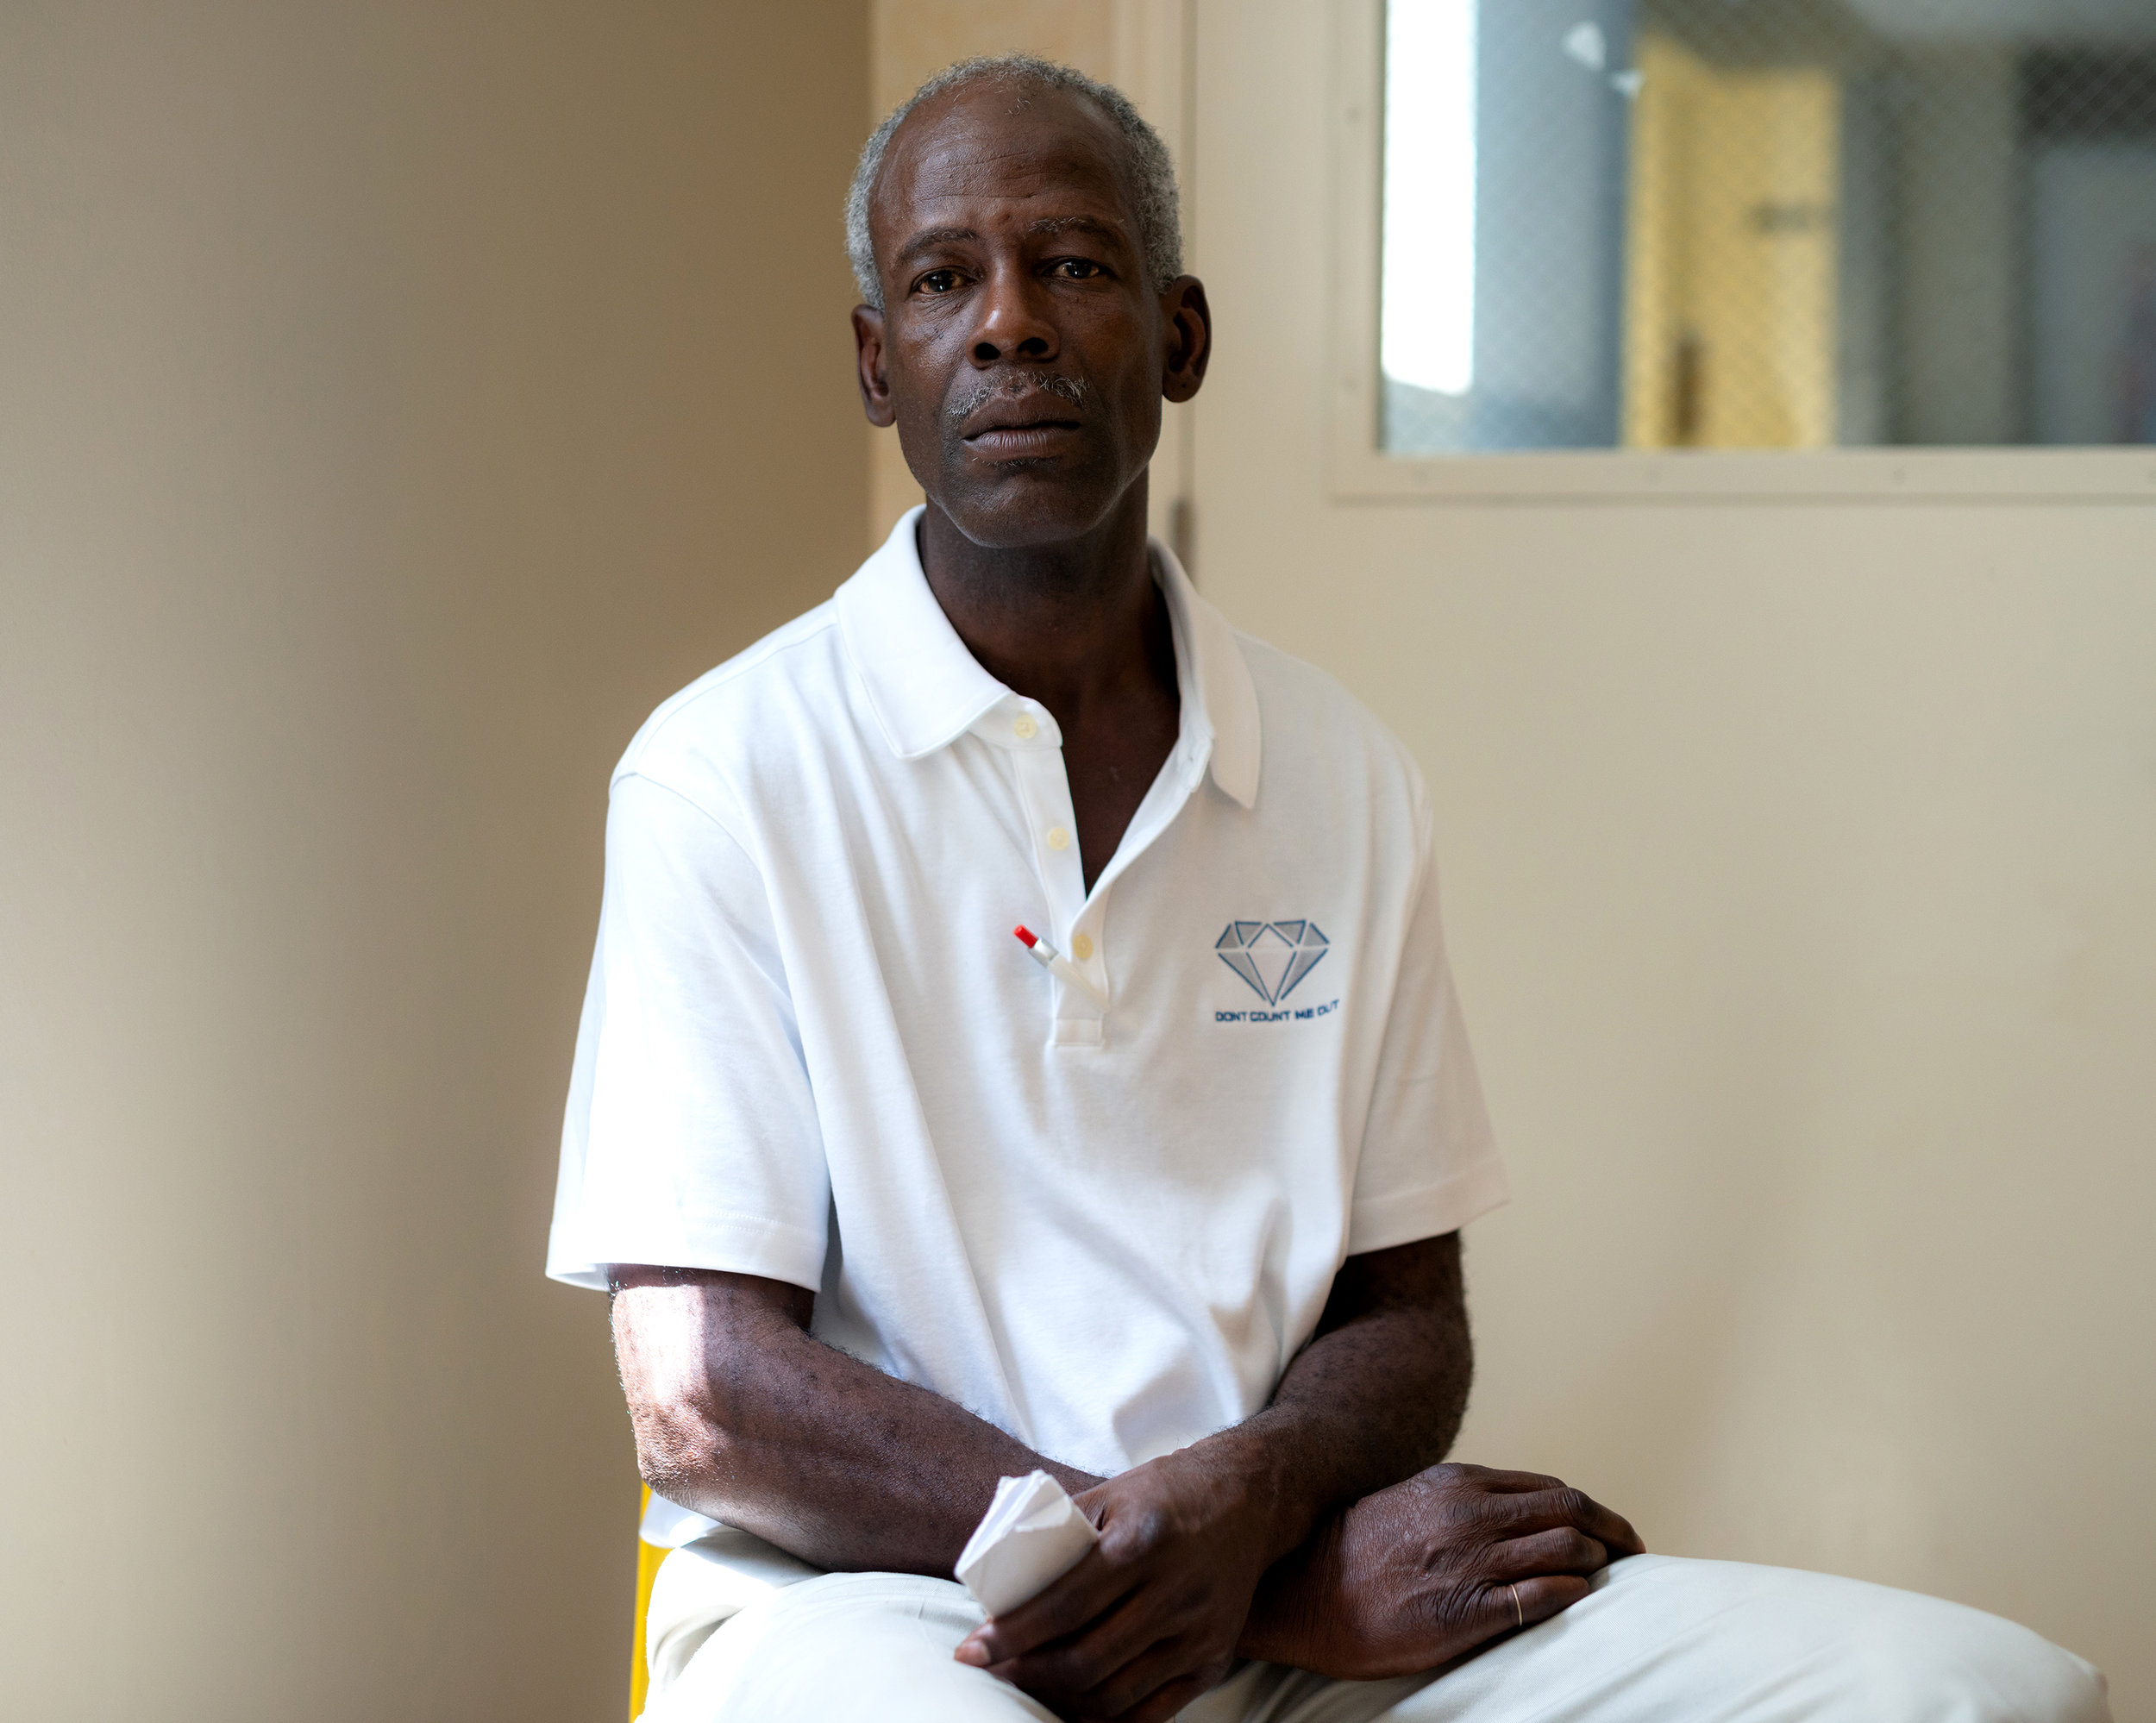 """NPR's Ina Jaffe reports from Georgia on the non-profit, Spread The Vote.    """" Jimmy Lockett spent 30 years in Atlanta 'running the streets,' as he put it — panhandling, doing drugs and working odd jobs off the books. It was the only kind of work he could get without an ID. He hadn't had one in decades. Now he does…It's hidden like a precious jewel deep in his pocket. """""""